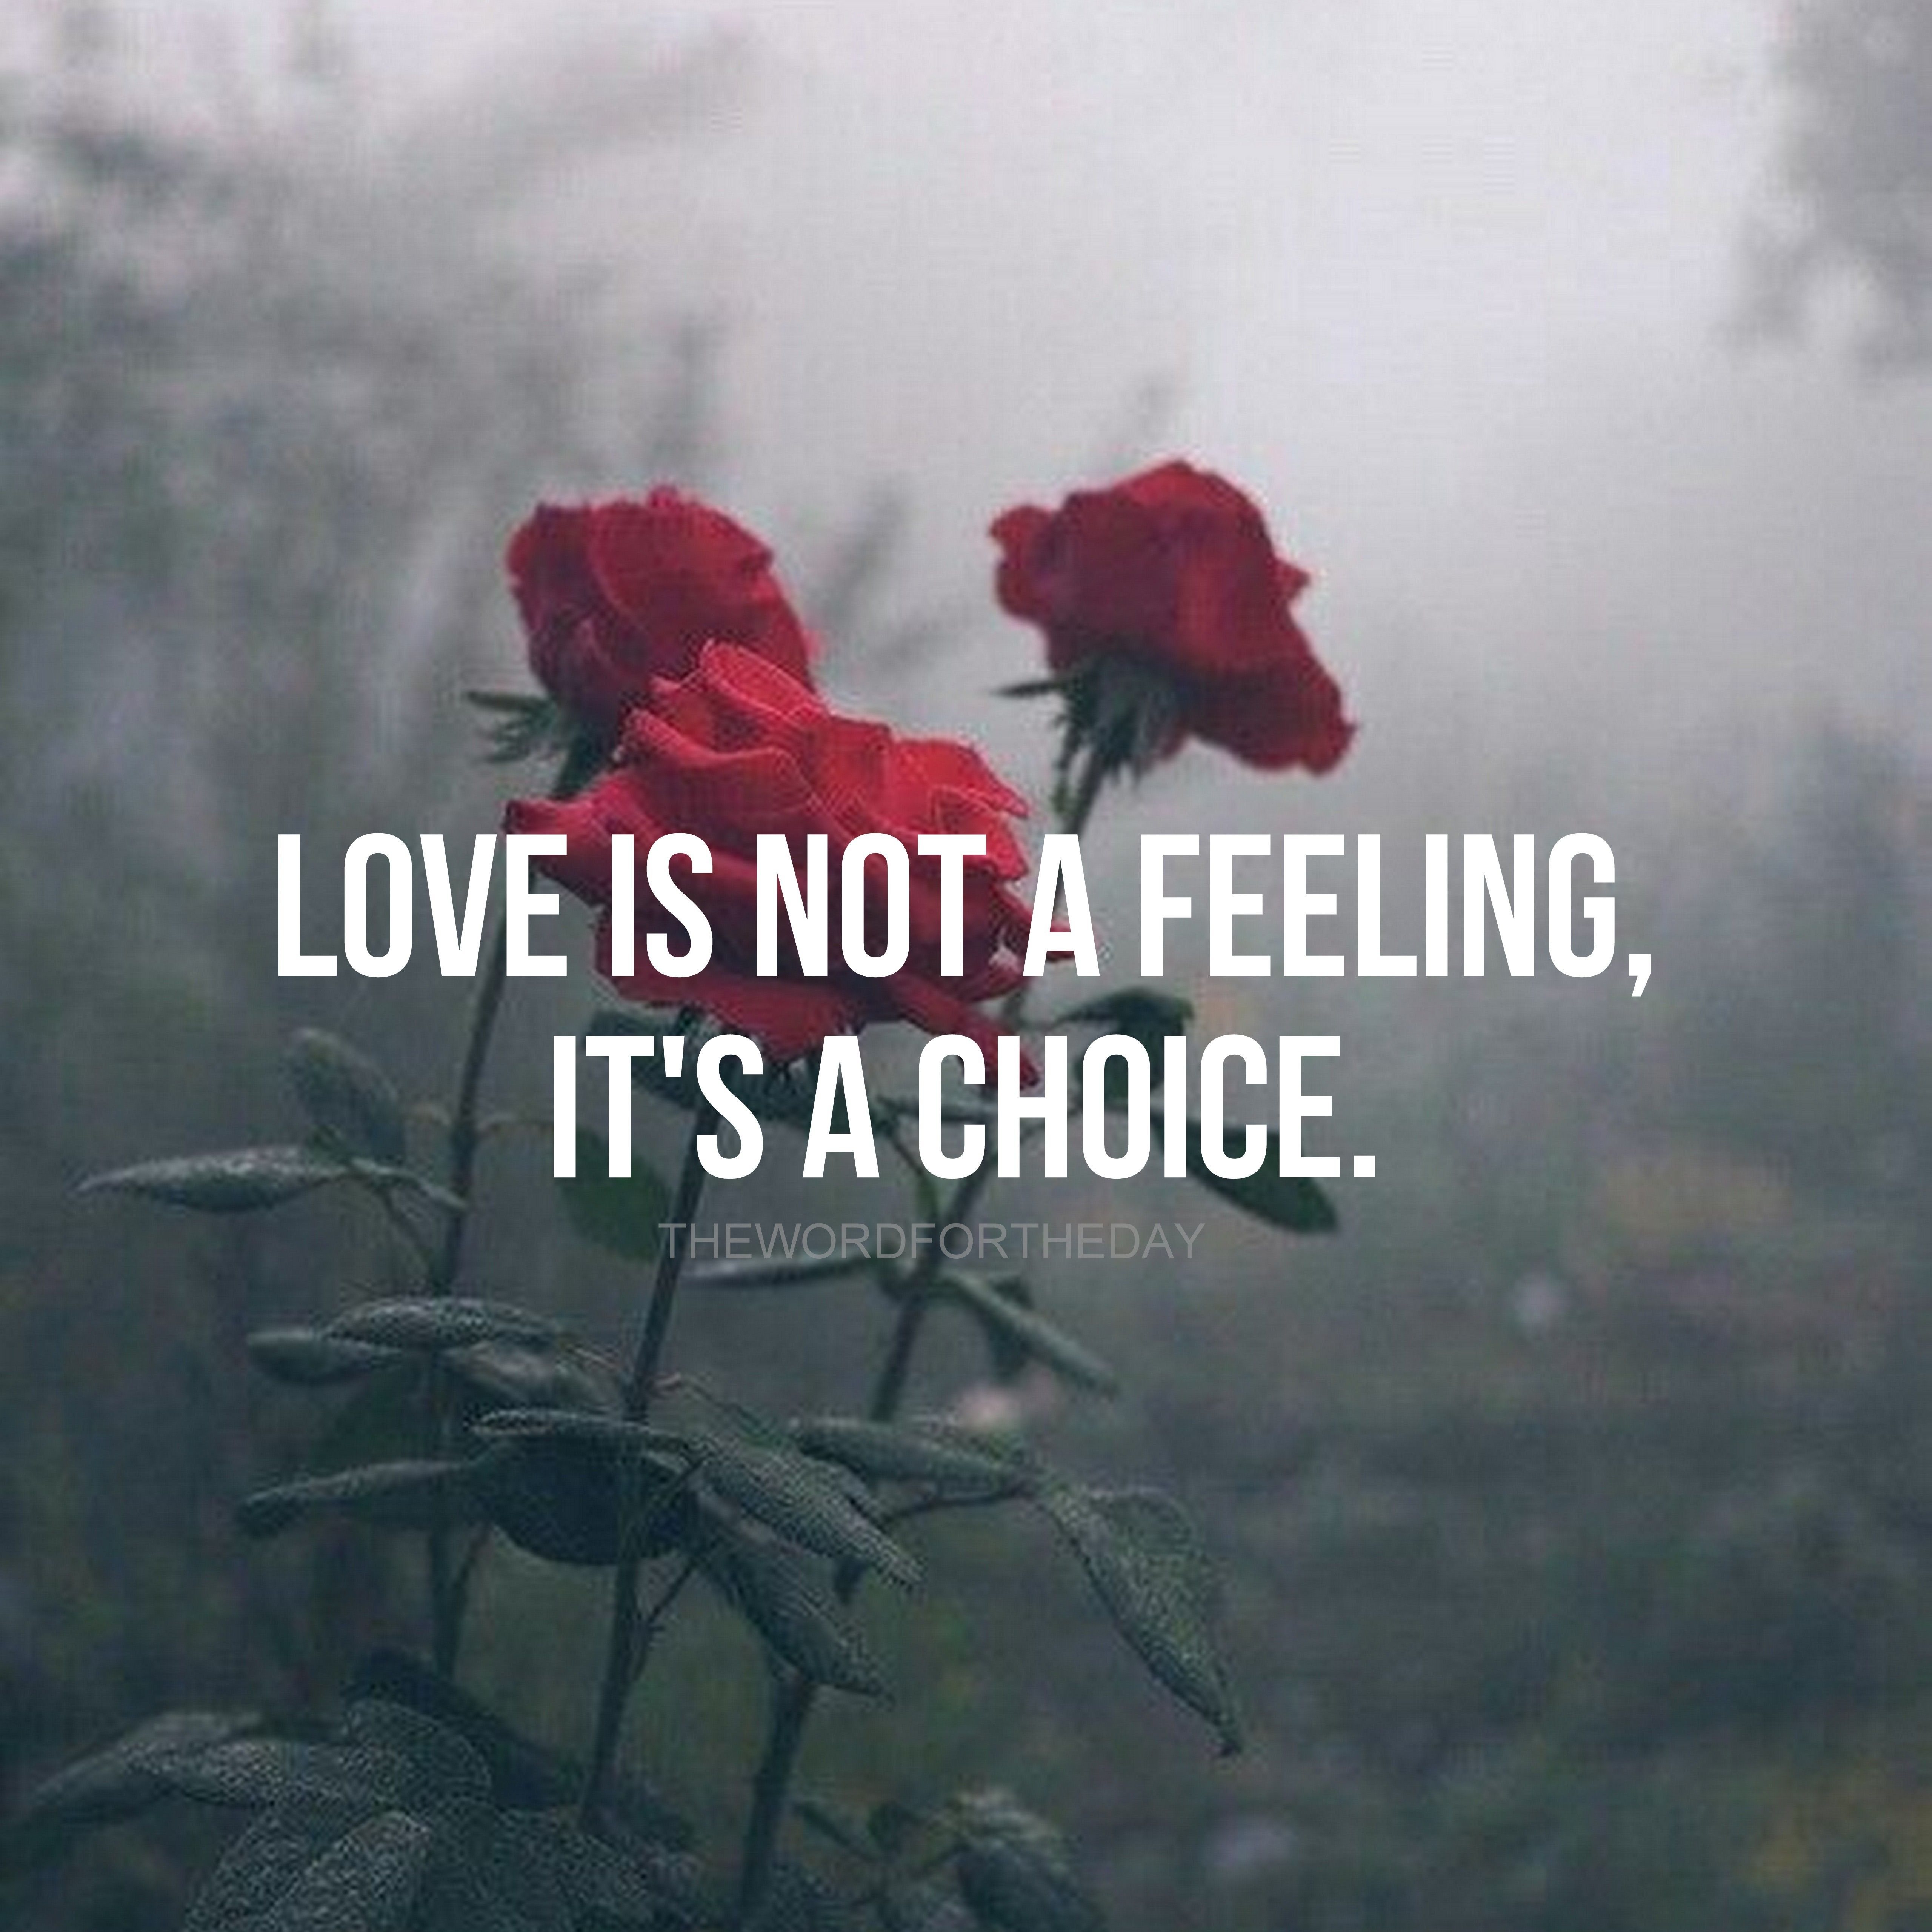 Red Roses Love Quotes God Is Love Love Bible Verse Christian Quotes Inspiration The Word For The Day Qu Music Quotes Funny Christian Love Quotes Music Quotes